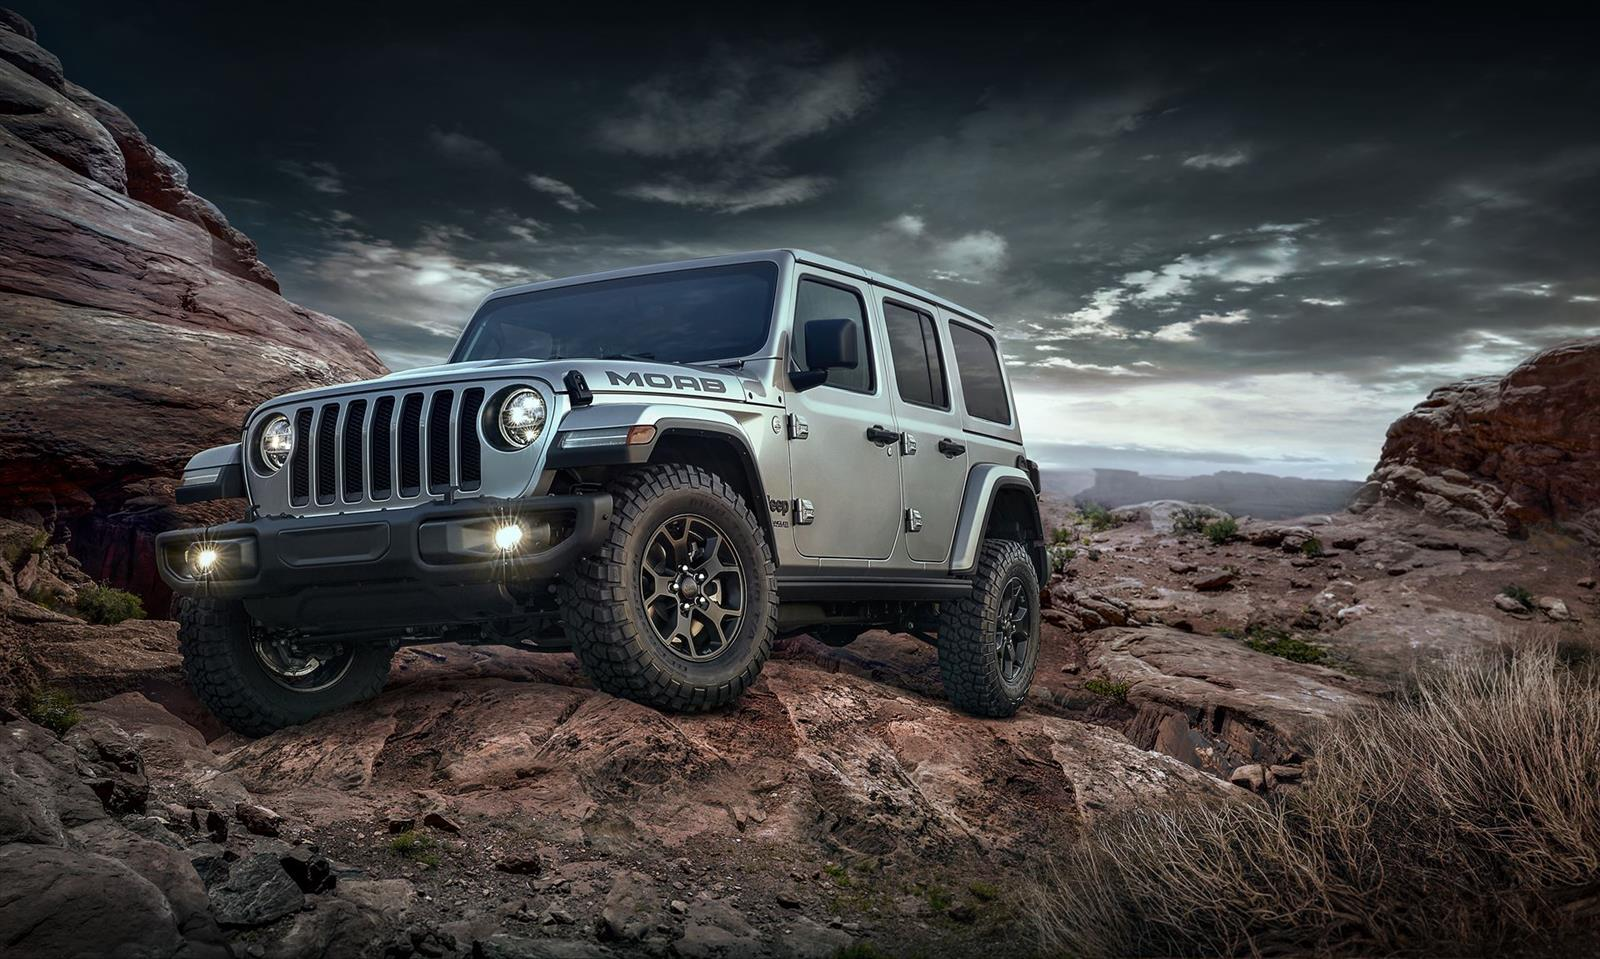 2018 Jeep Wrangler Moab Edition